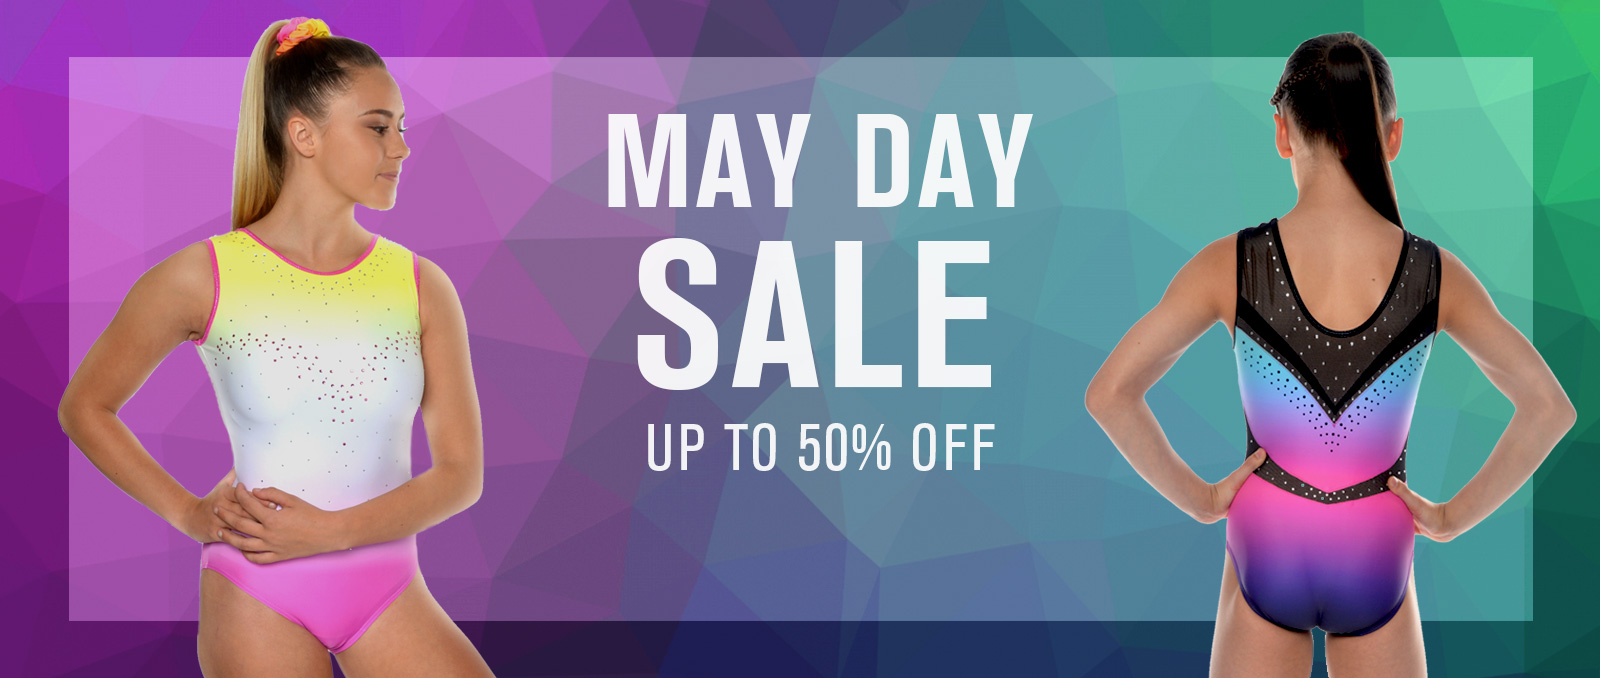 2019_may_day_sale